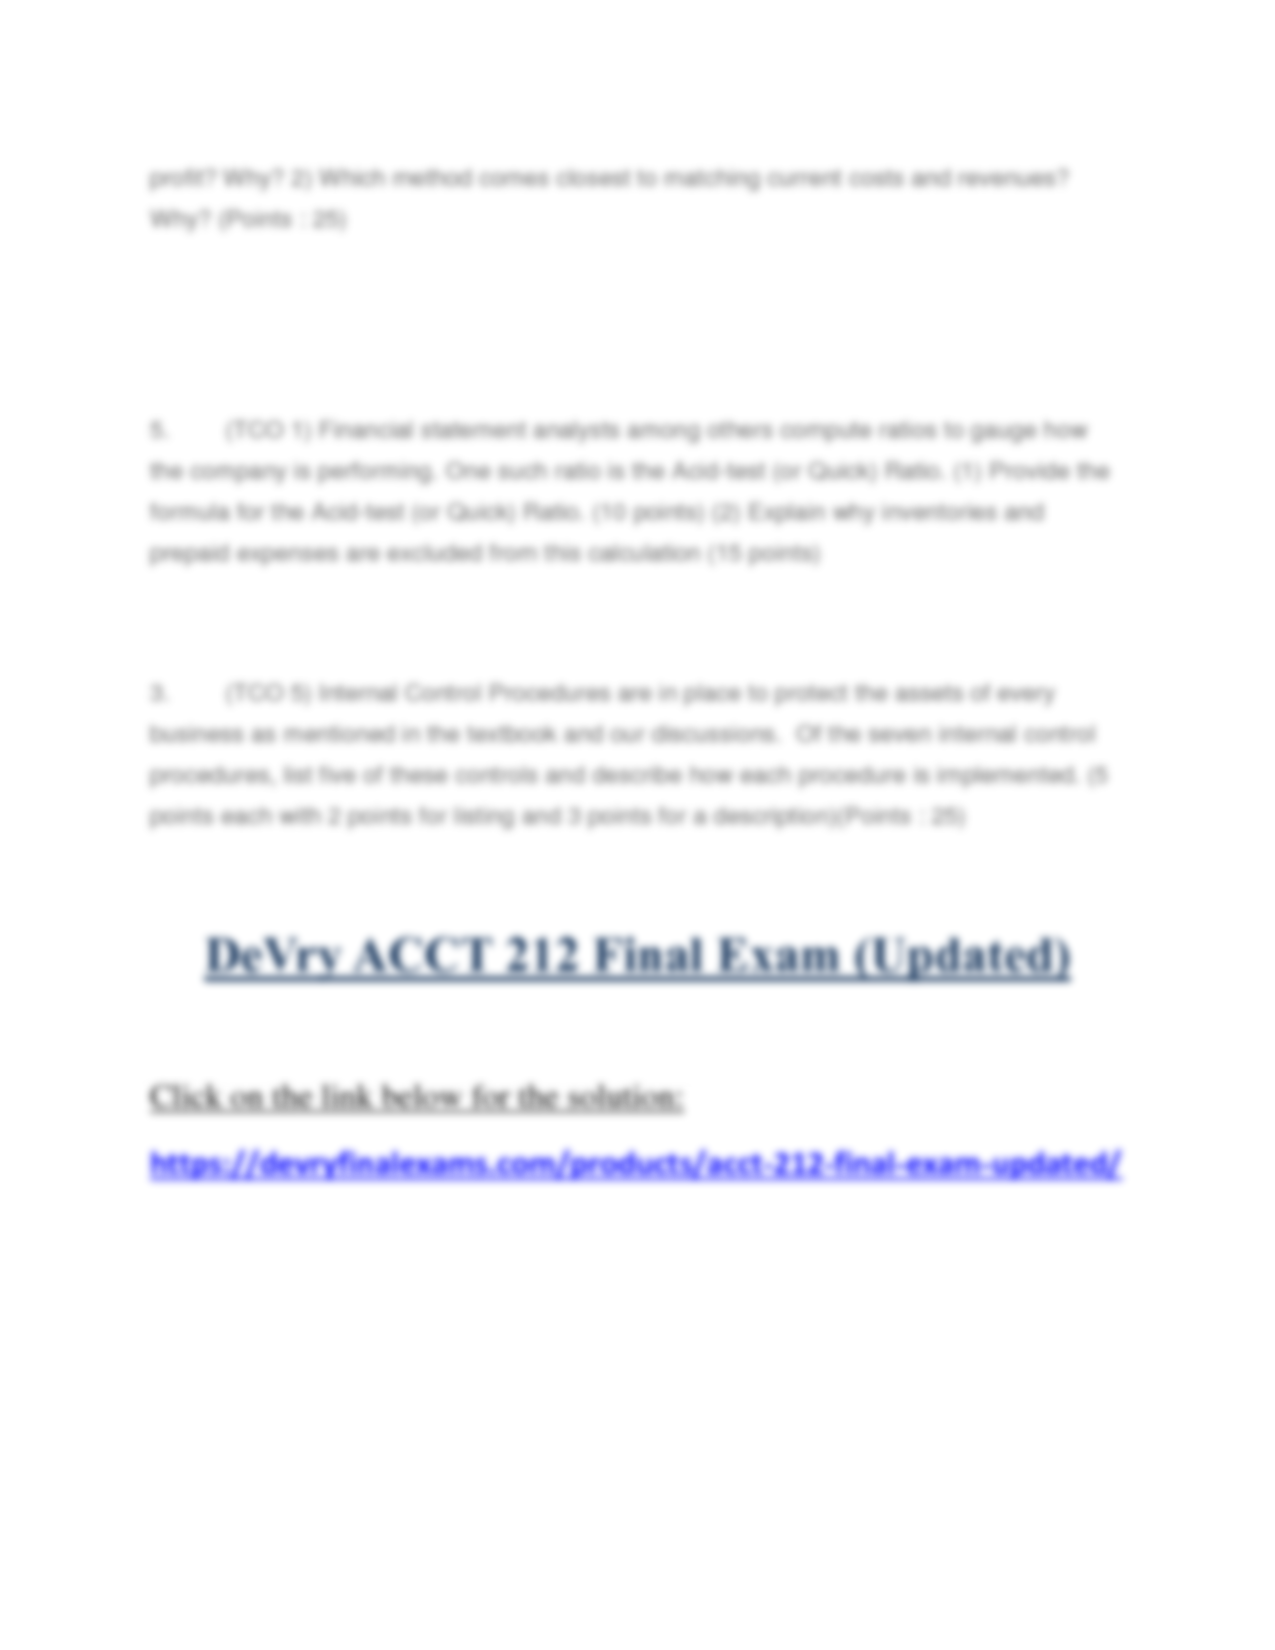 acct 5302 review answers exam 1 Accounting 15511 summer 2004 midterm exam exam guidelines: - you have 80 minutes to complete the exam please use your time efficiently  - important for the auditors that review the financial statements  (a complete numeric answer would require detailed information on depreciation.